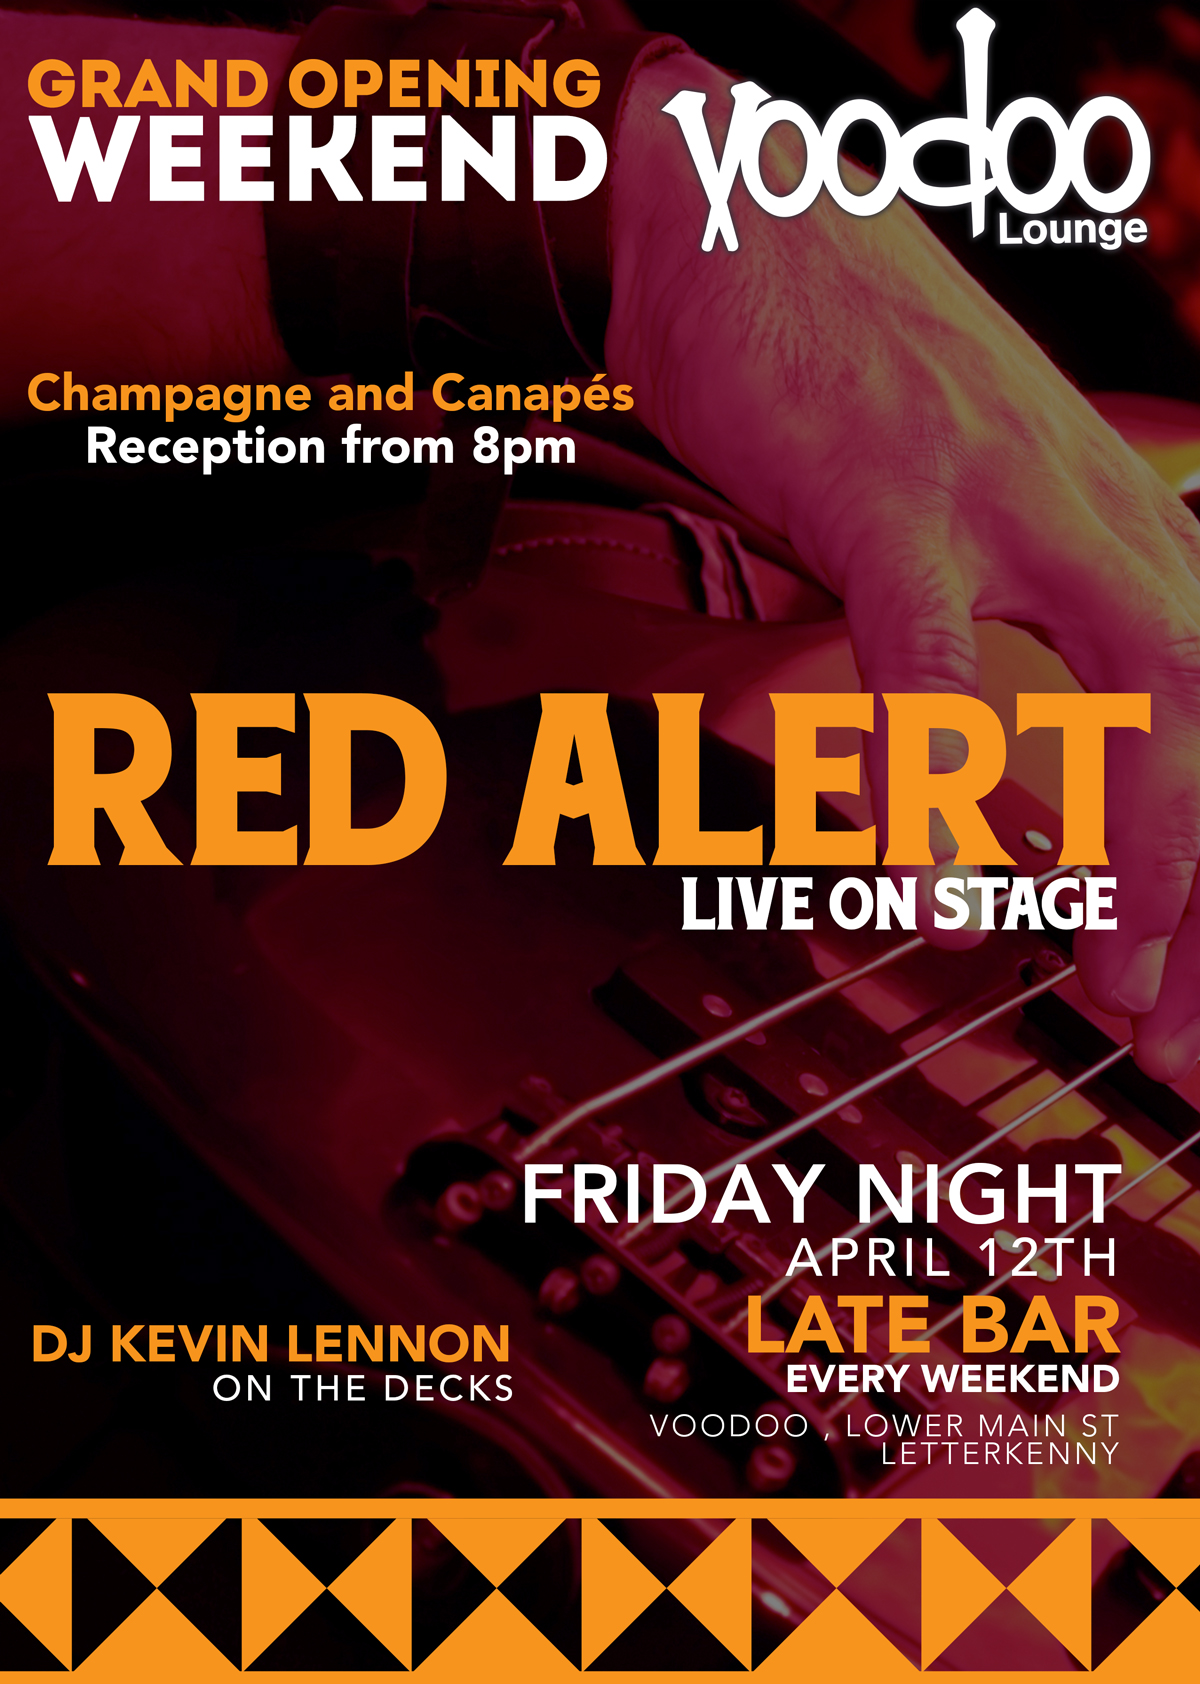 voodoo-lounge---red-alert-grand-opening---fri-april-12-2019.jpg